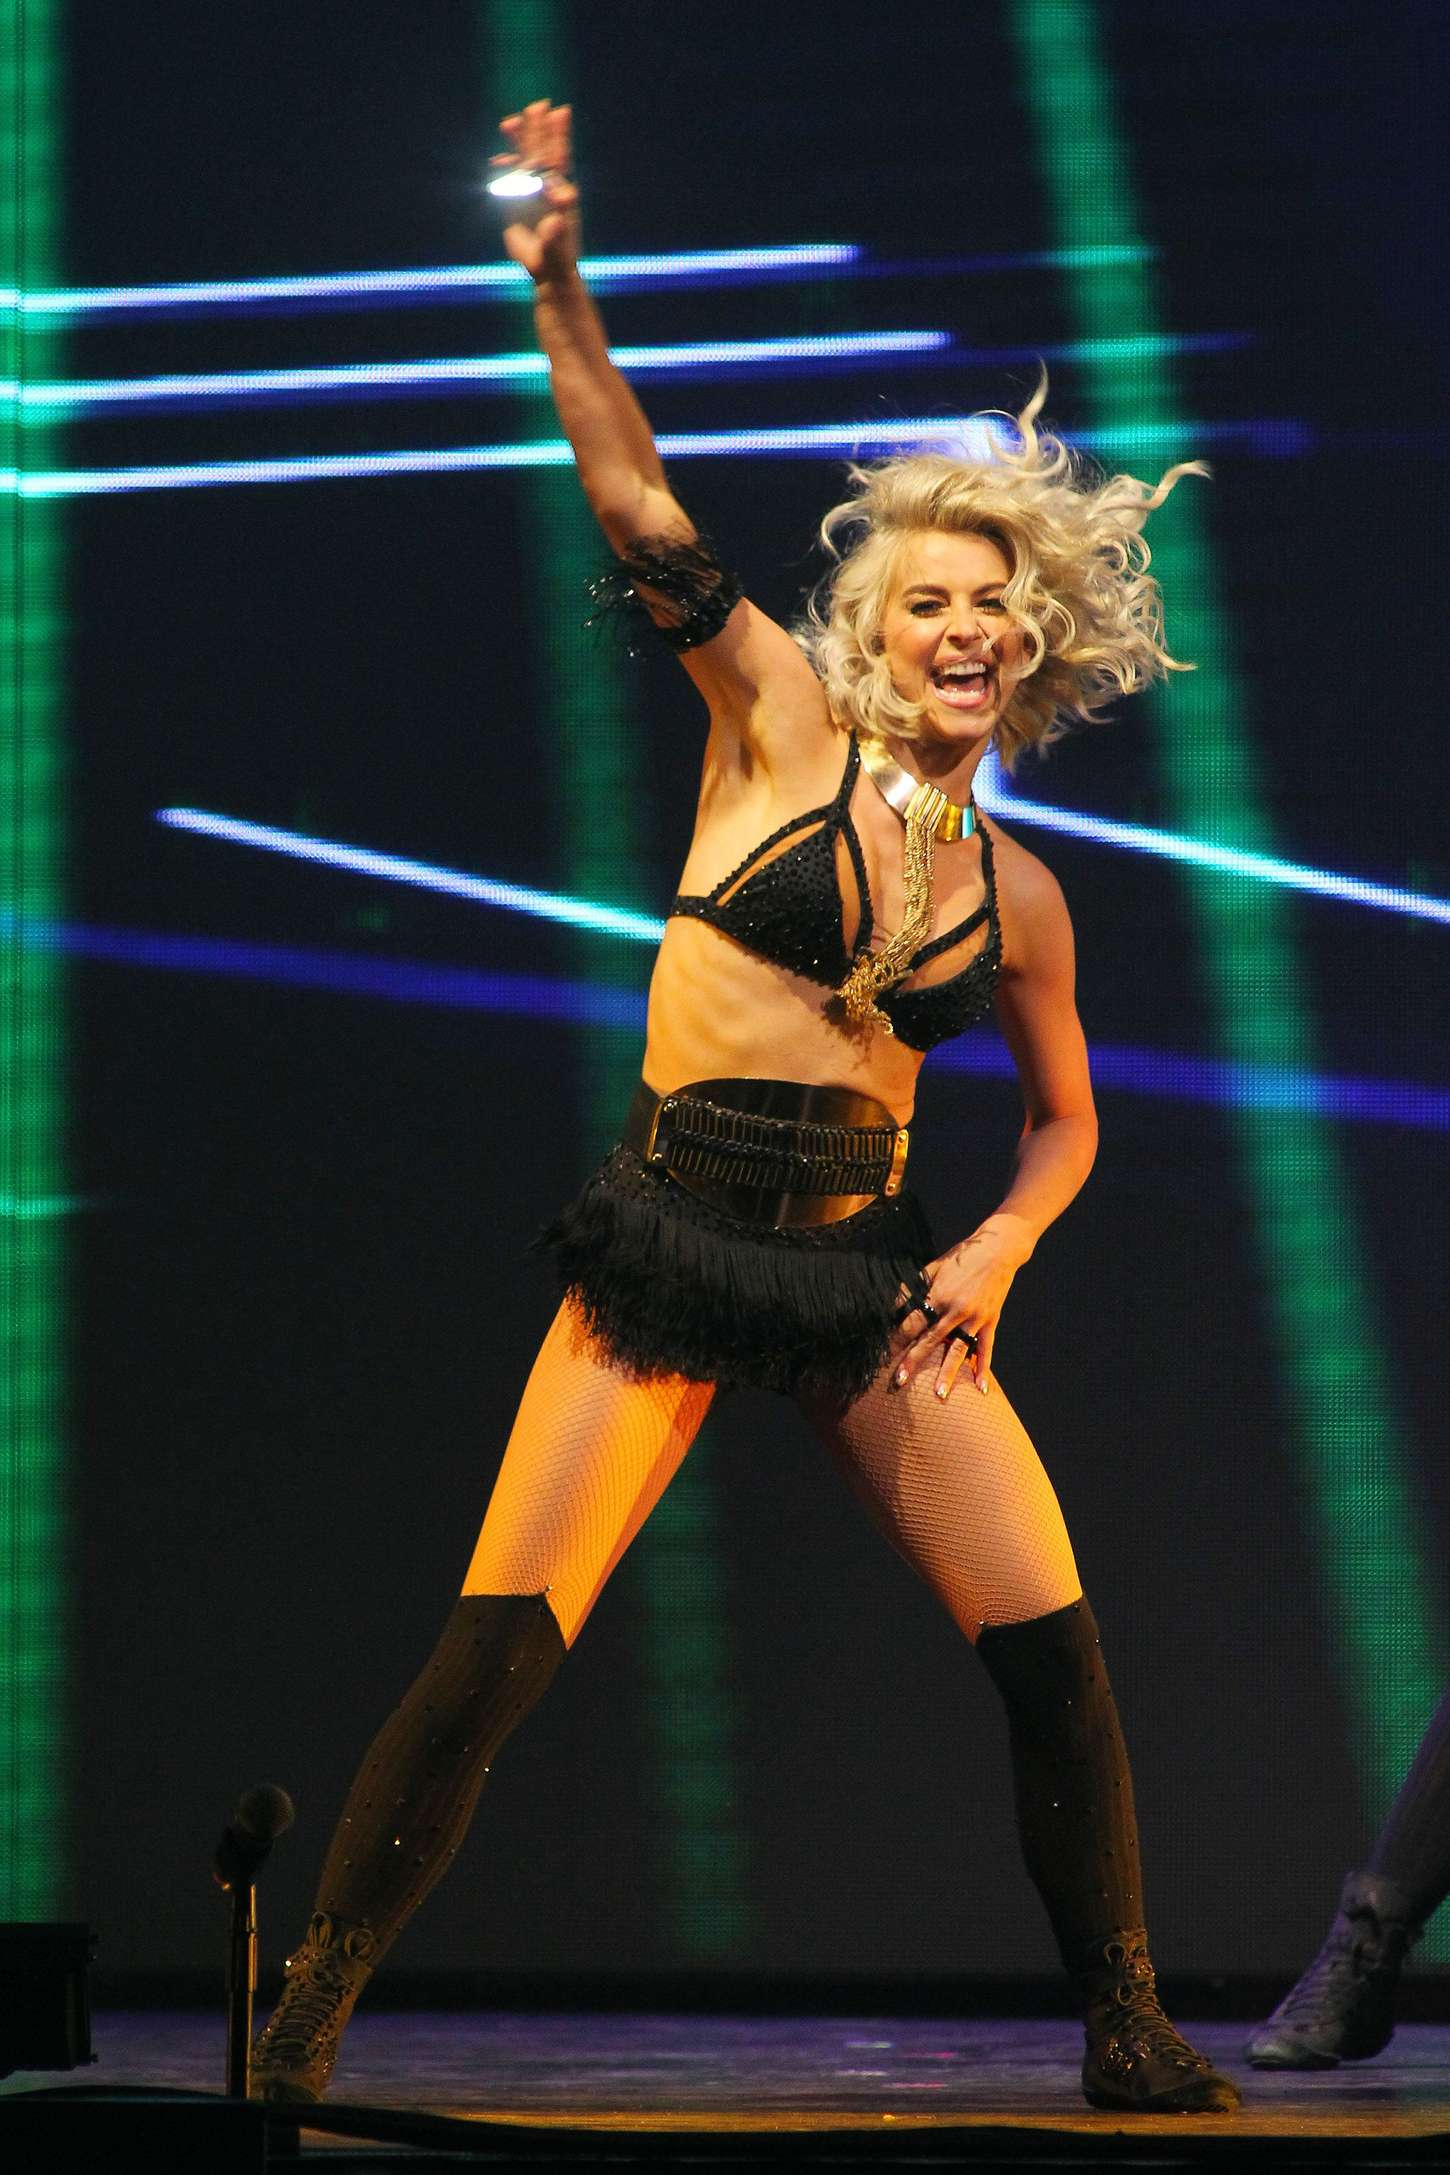 Julianne Hough 2015 : Julianne Hough: Performing at MOVE Live on Tour -35